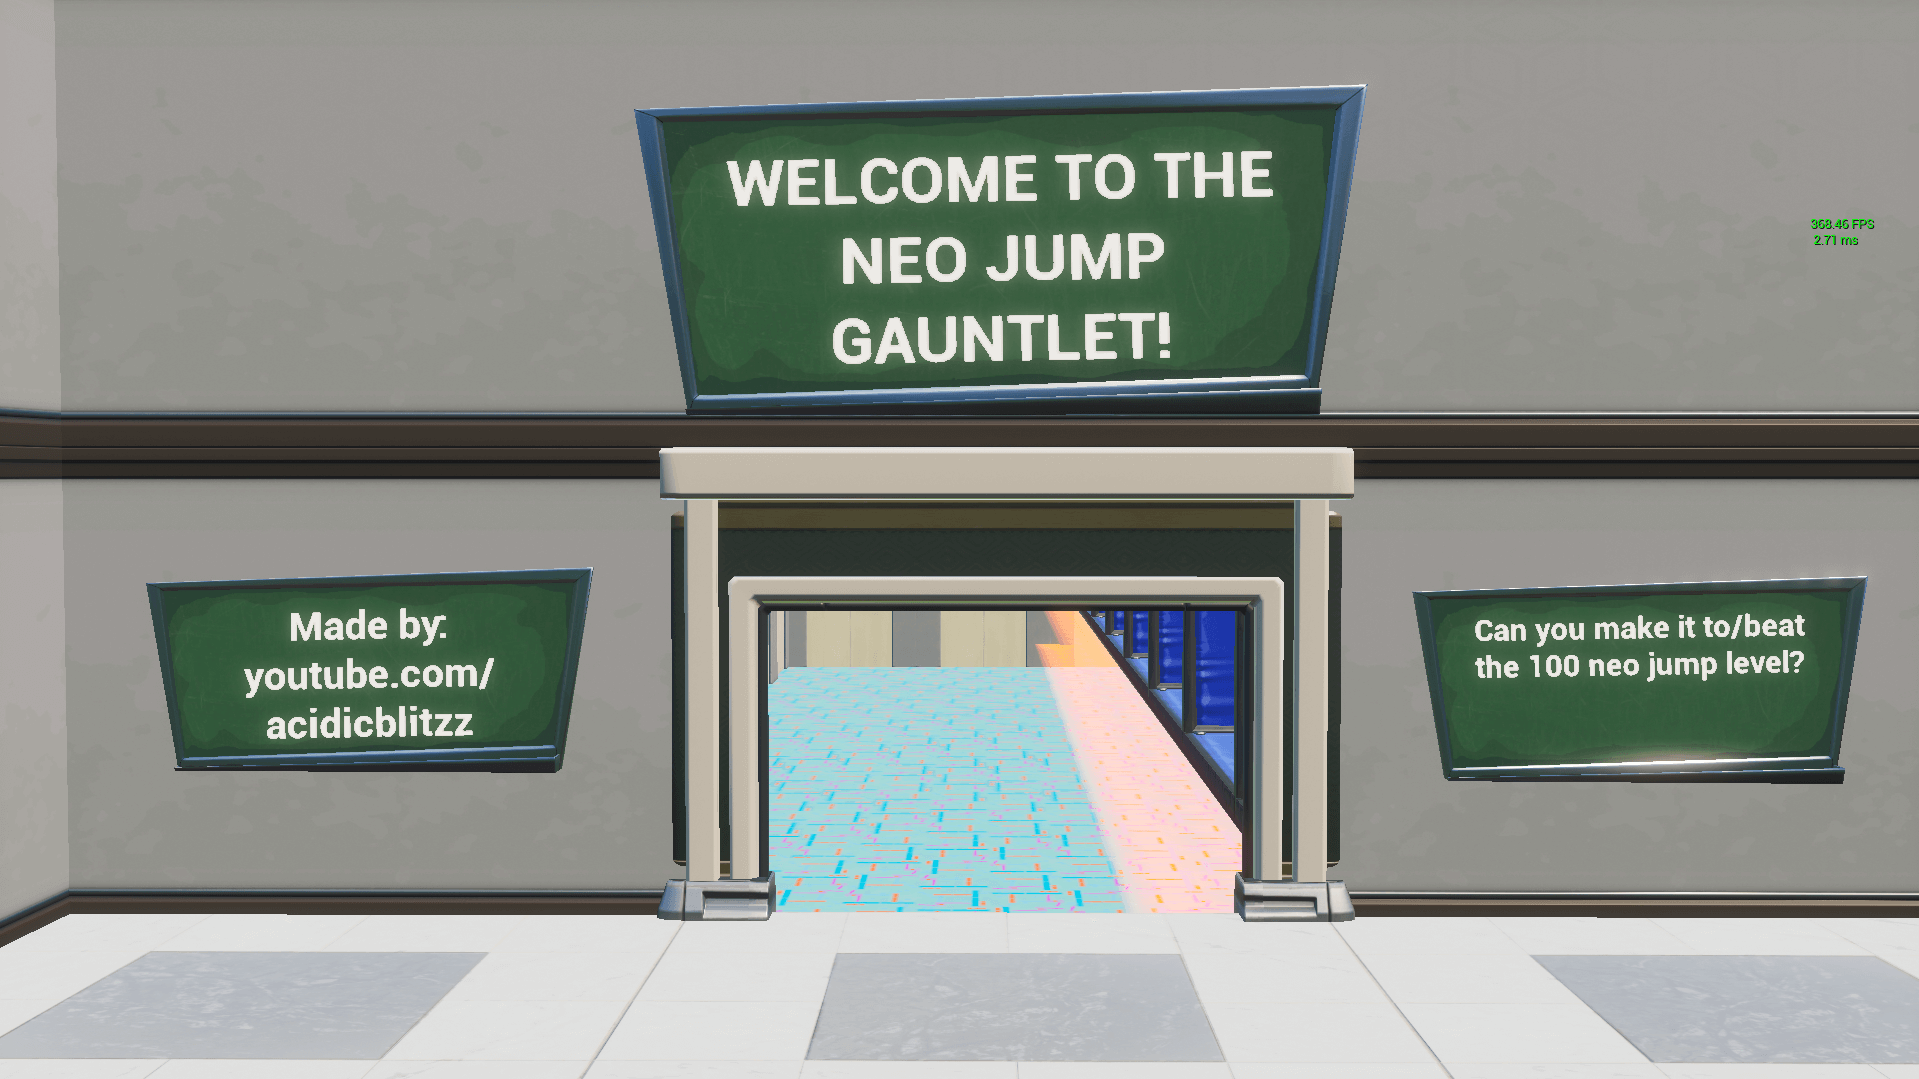 THE NEO JUMP GAUNTLET!